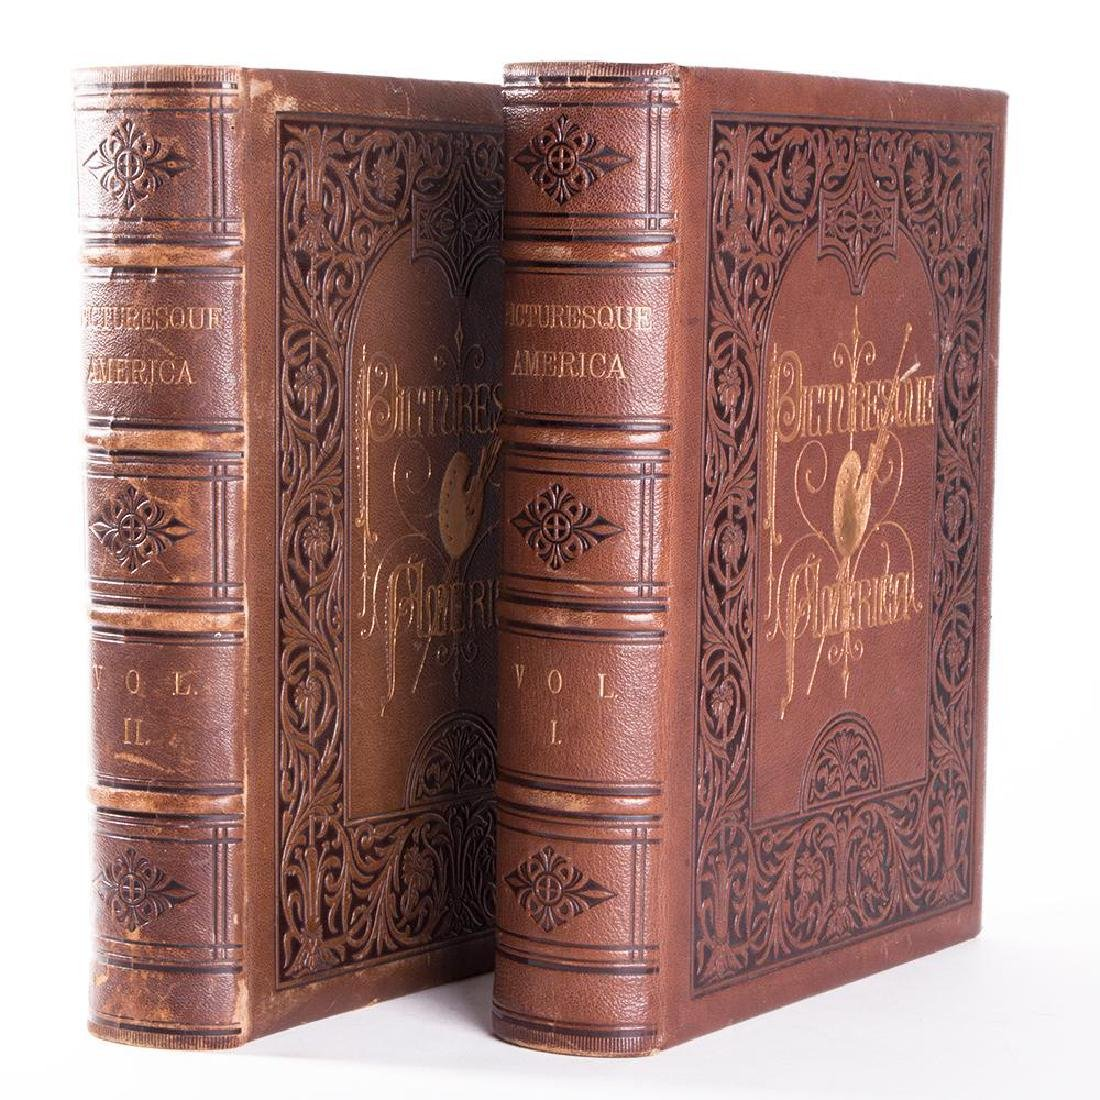 2 Volumes, Picturesque America; Or, The Land We Live In